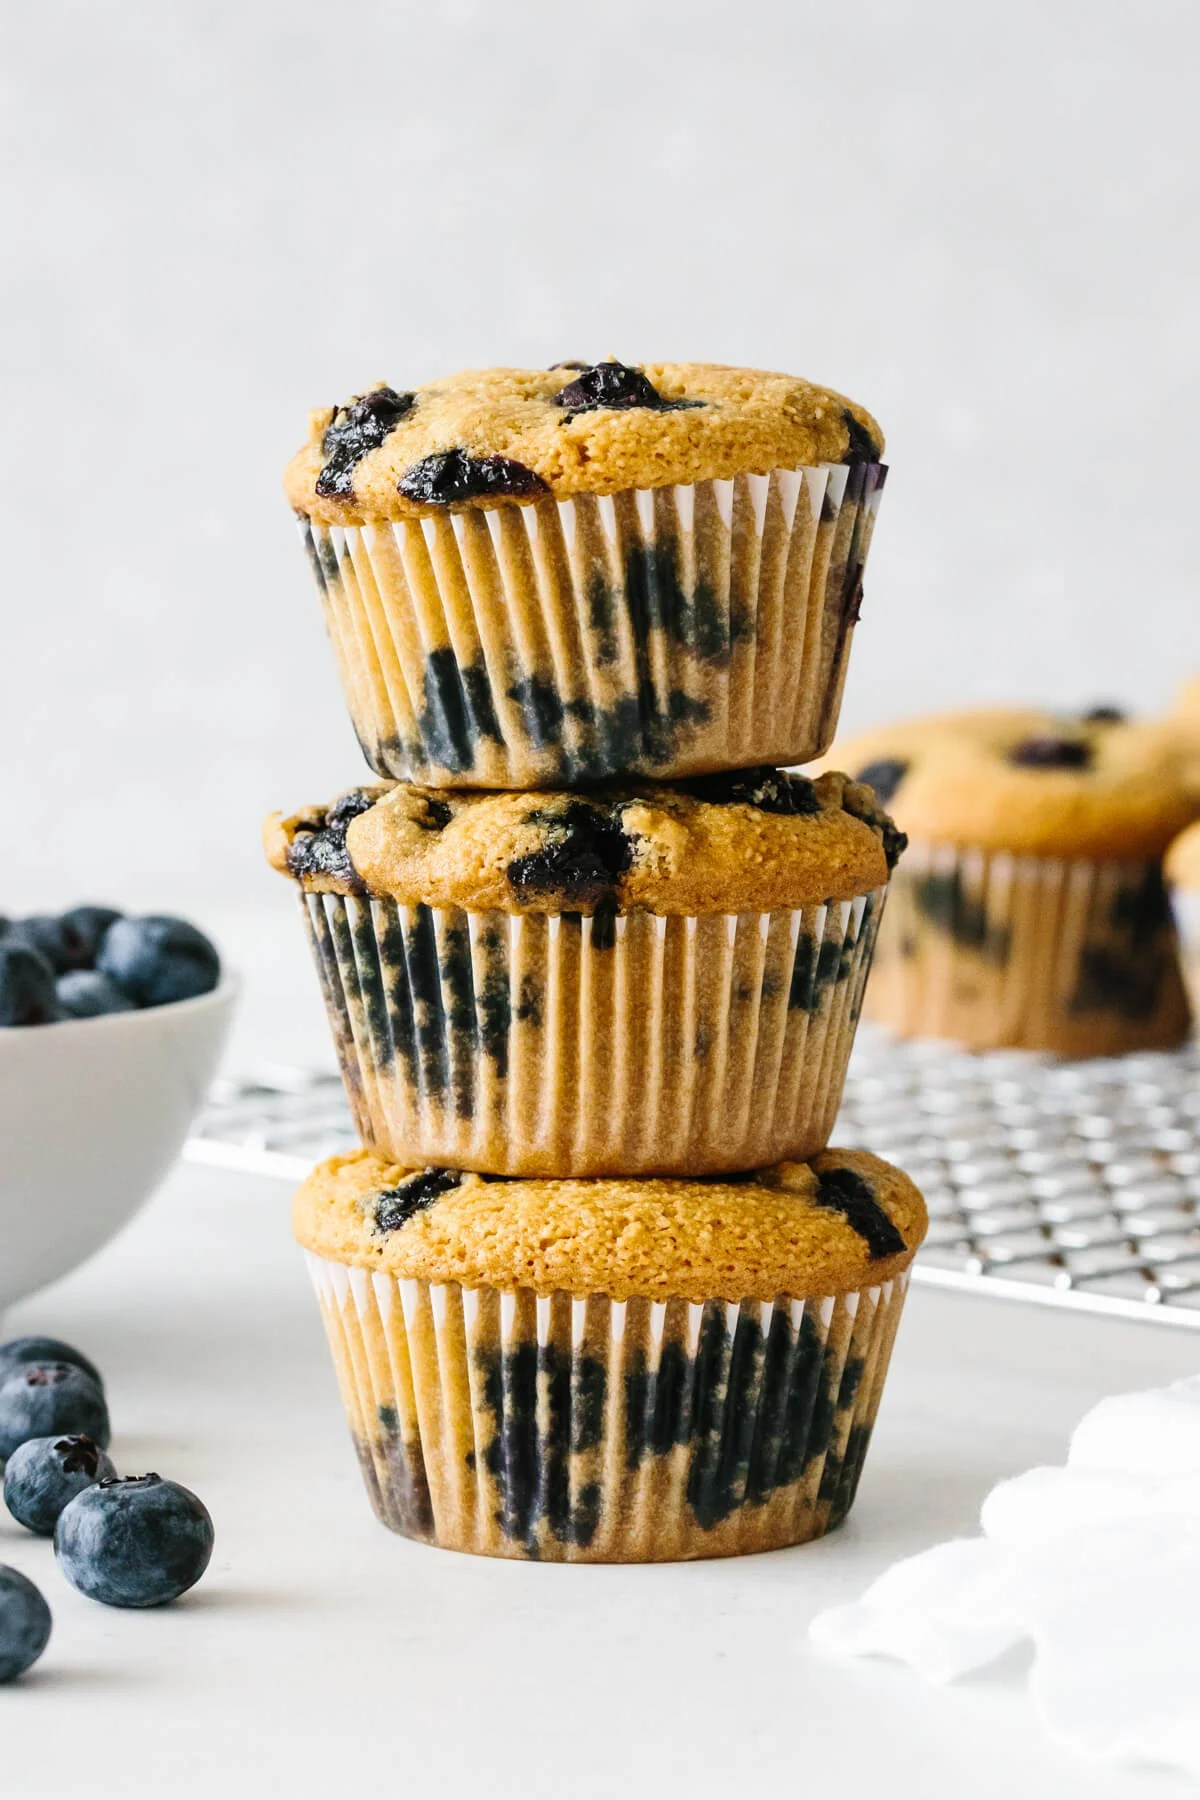 Three paleo blueberry muffins stacked on top of each other.